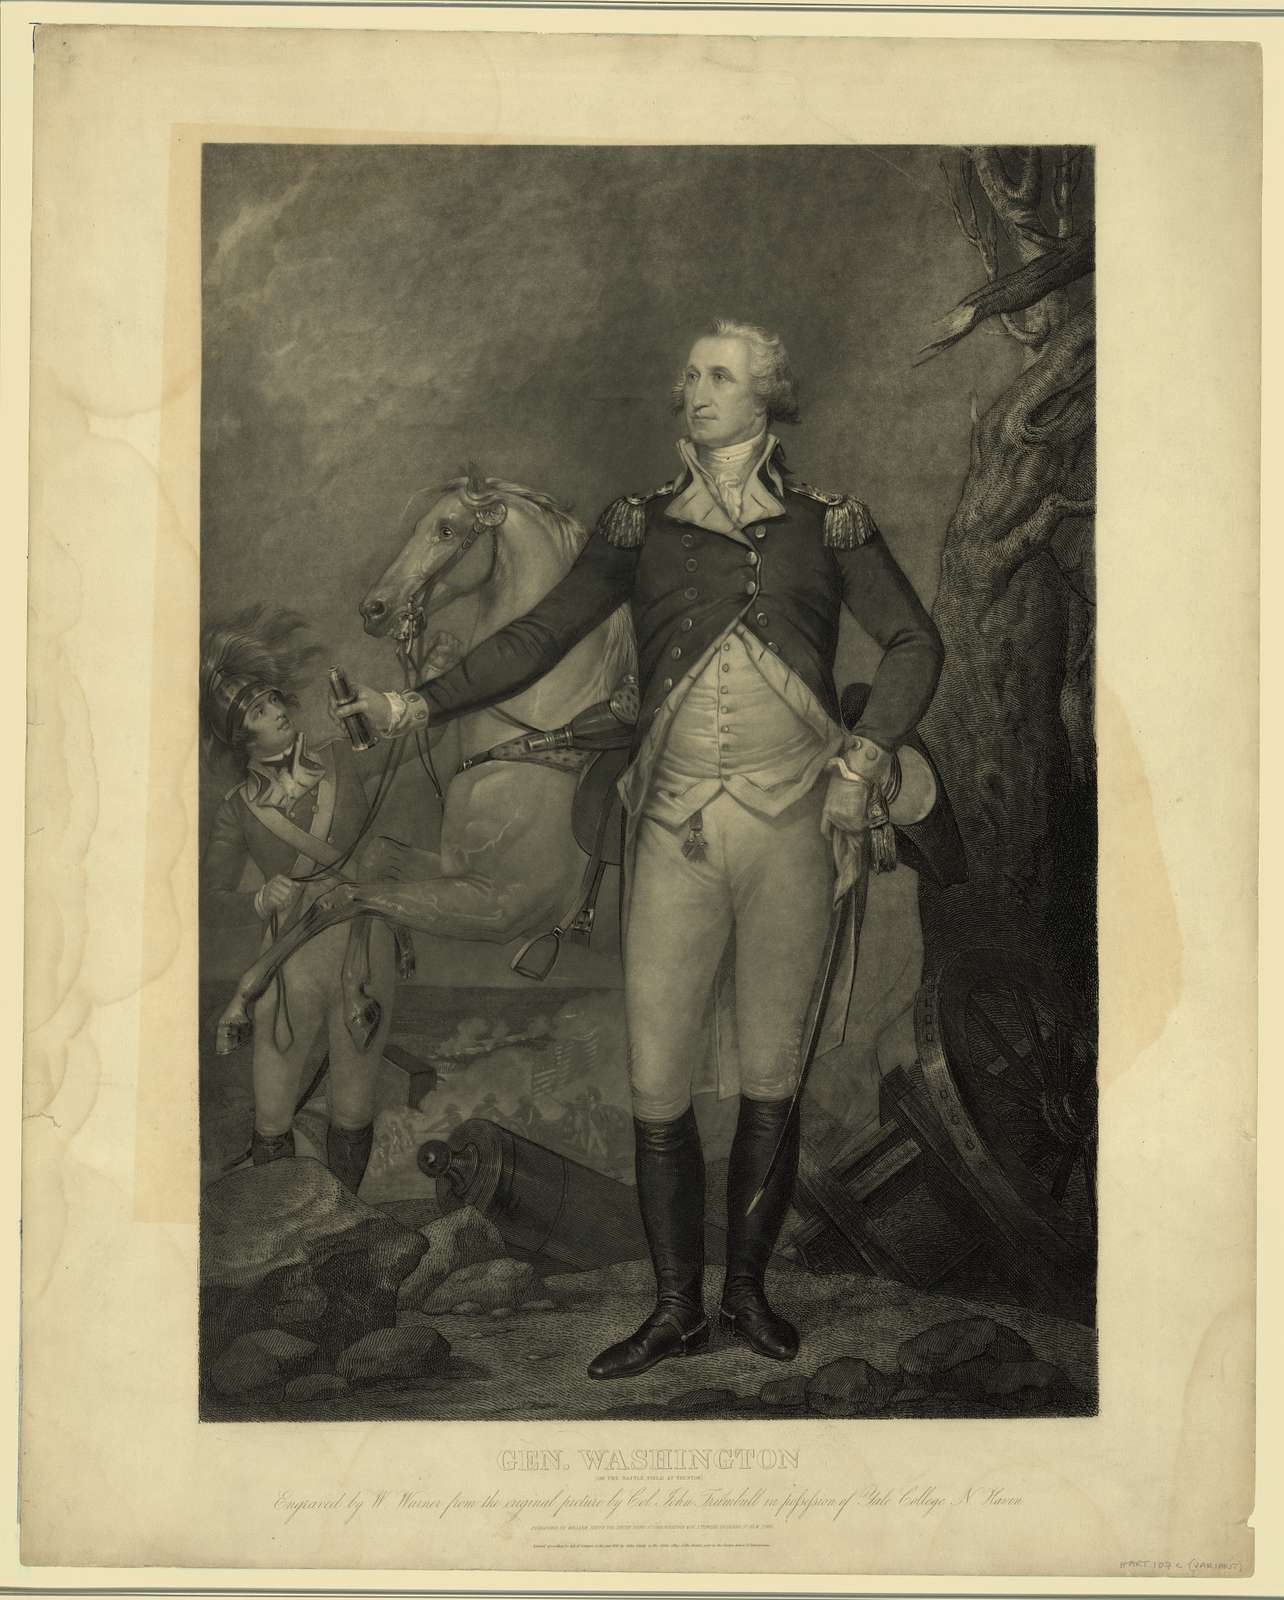 Gen. Washington (on the battle field at Trenton) / engraved by W. Warner from the original picture by Col. John Trumbull in possession of Yale College N. Haven.